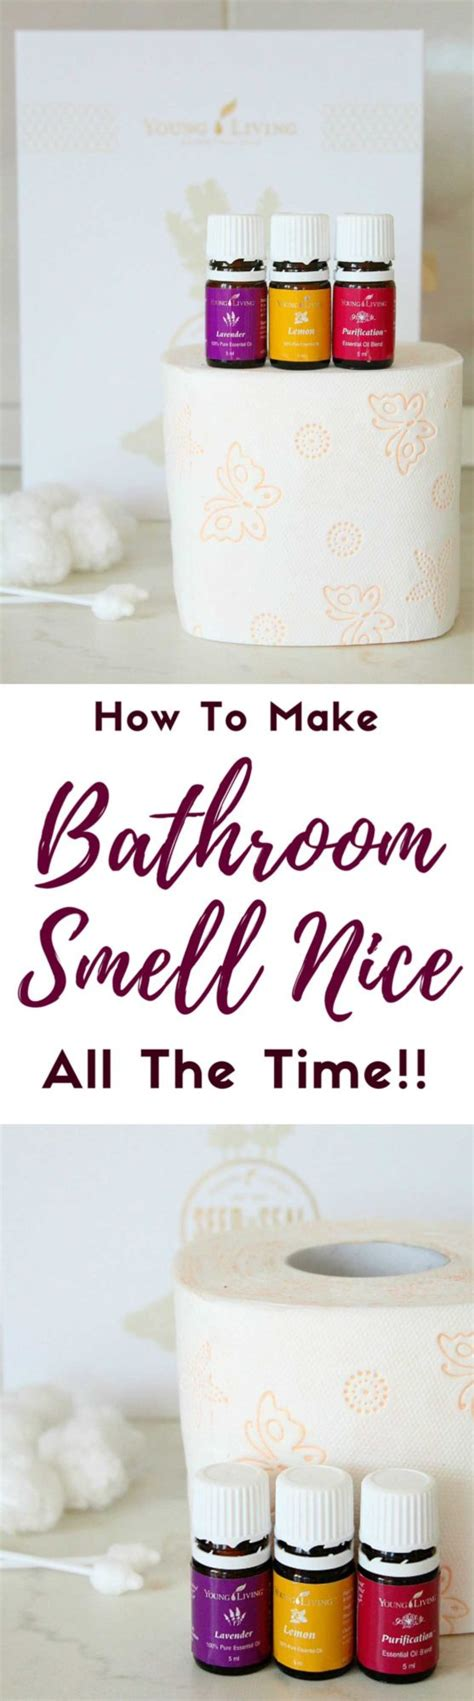 how to make the bathroom smell good best air freshener for bathroom to keep it smell like a